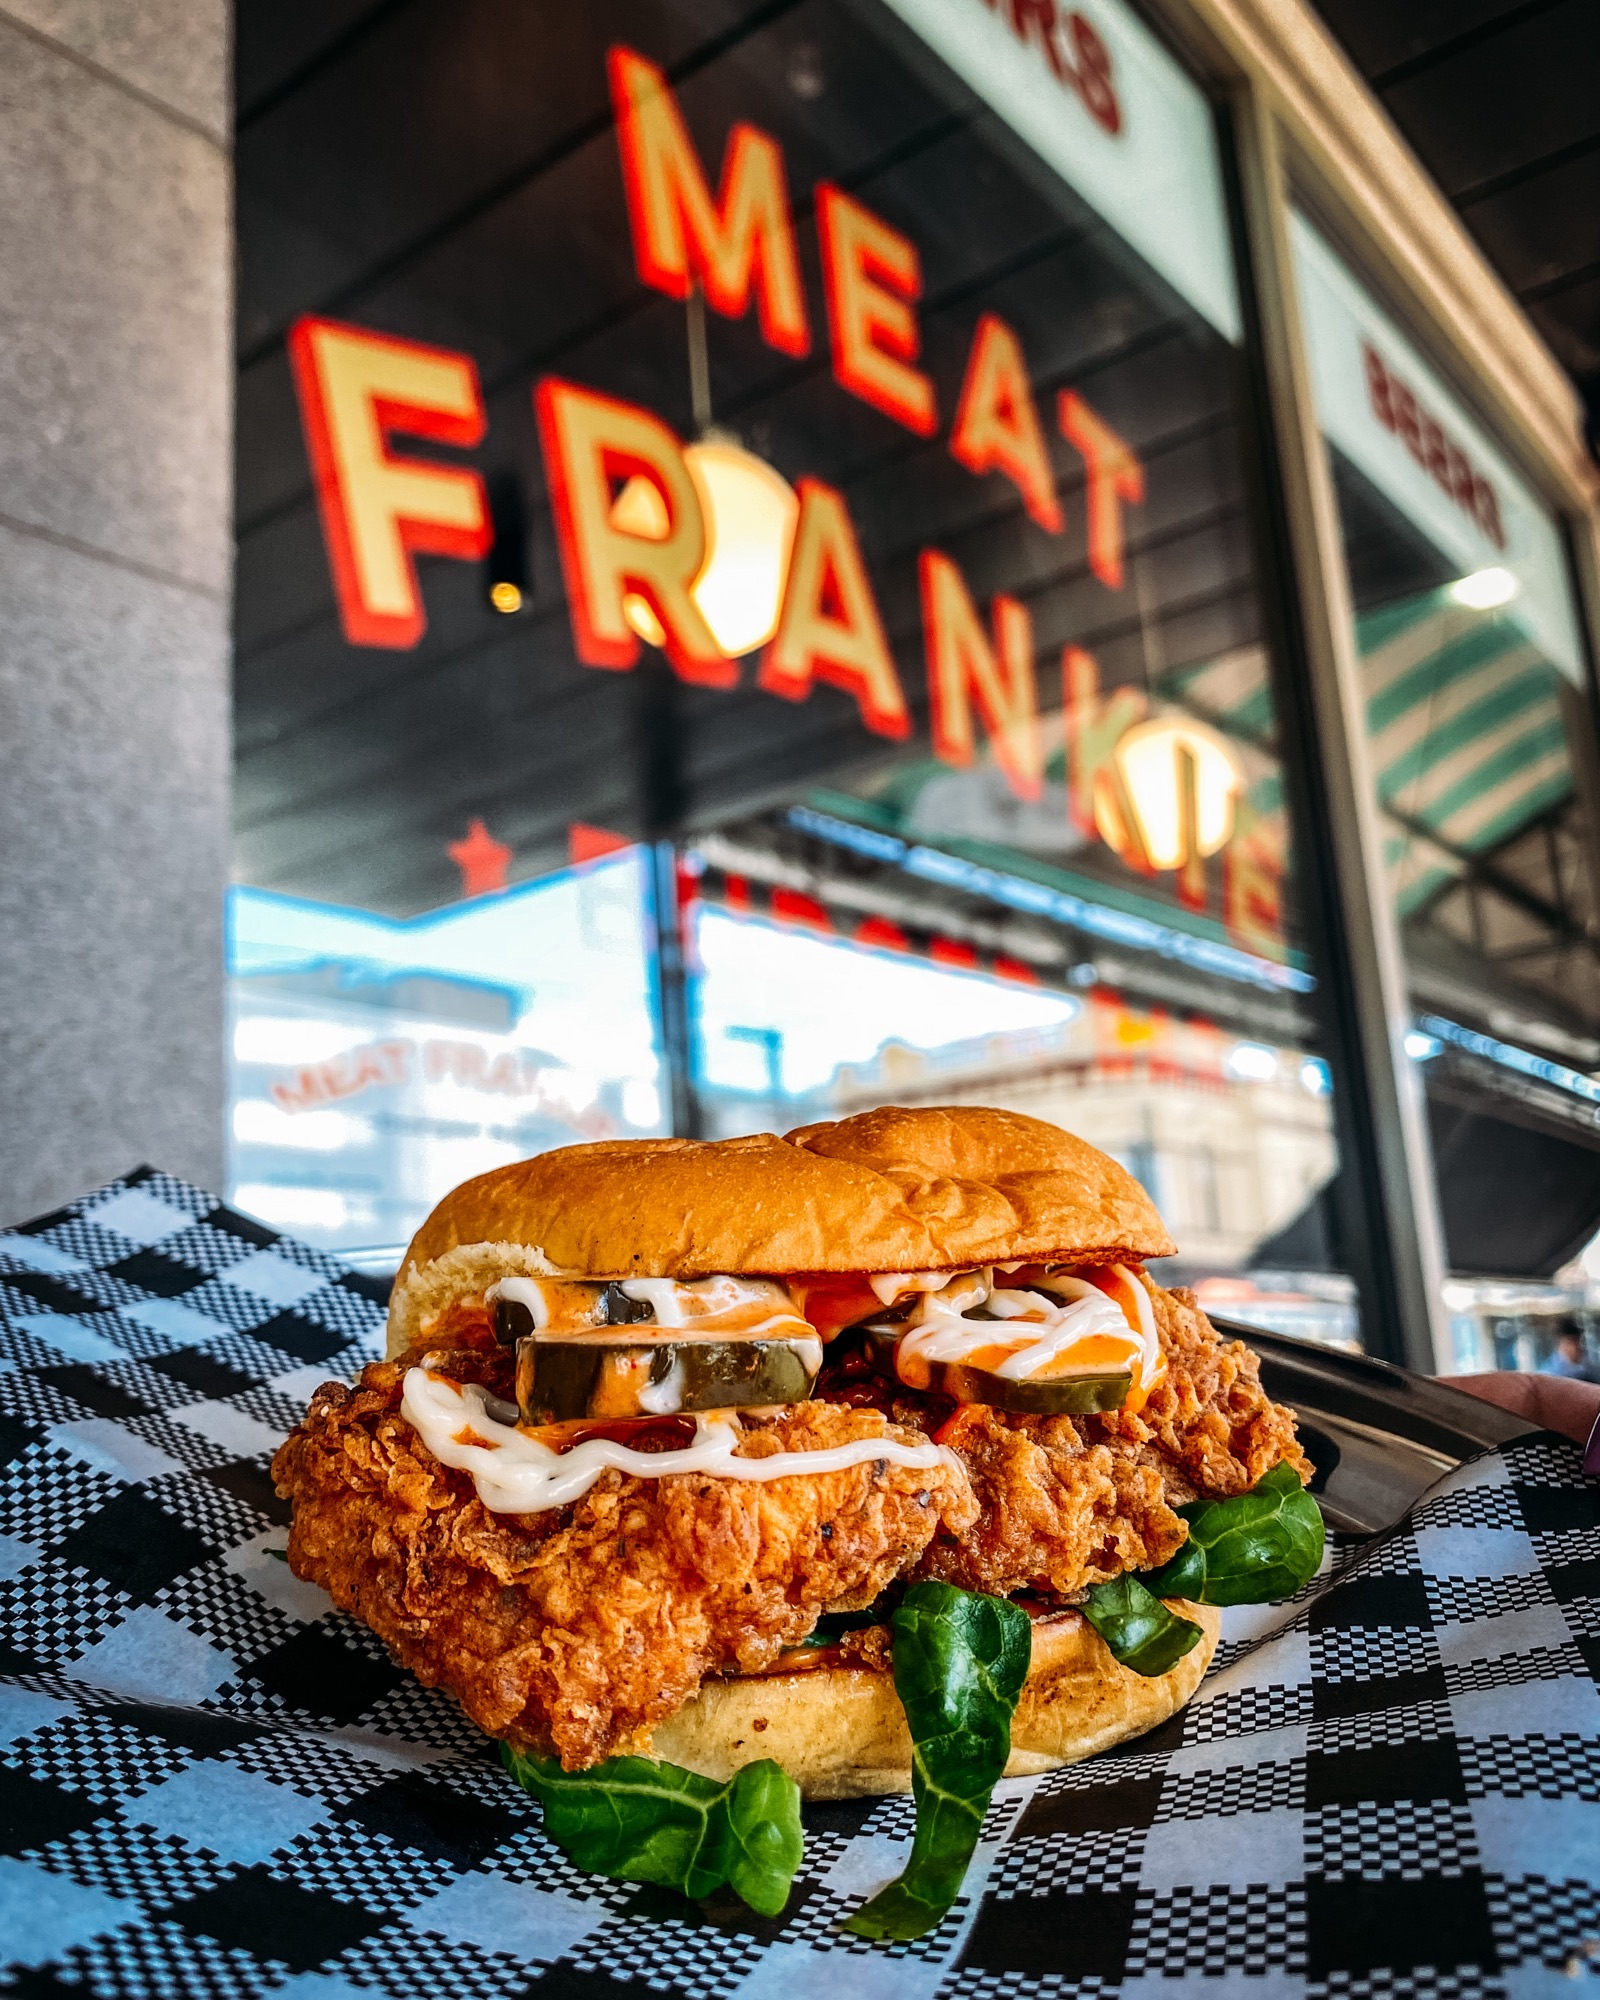 It's Time To 'Meat Frankie': Brunswick Burger Bar A Serious Winner